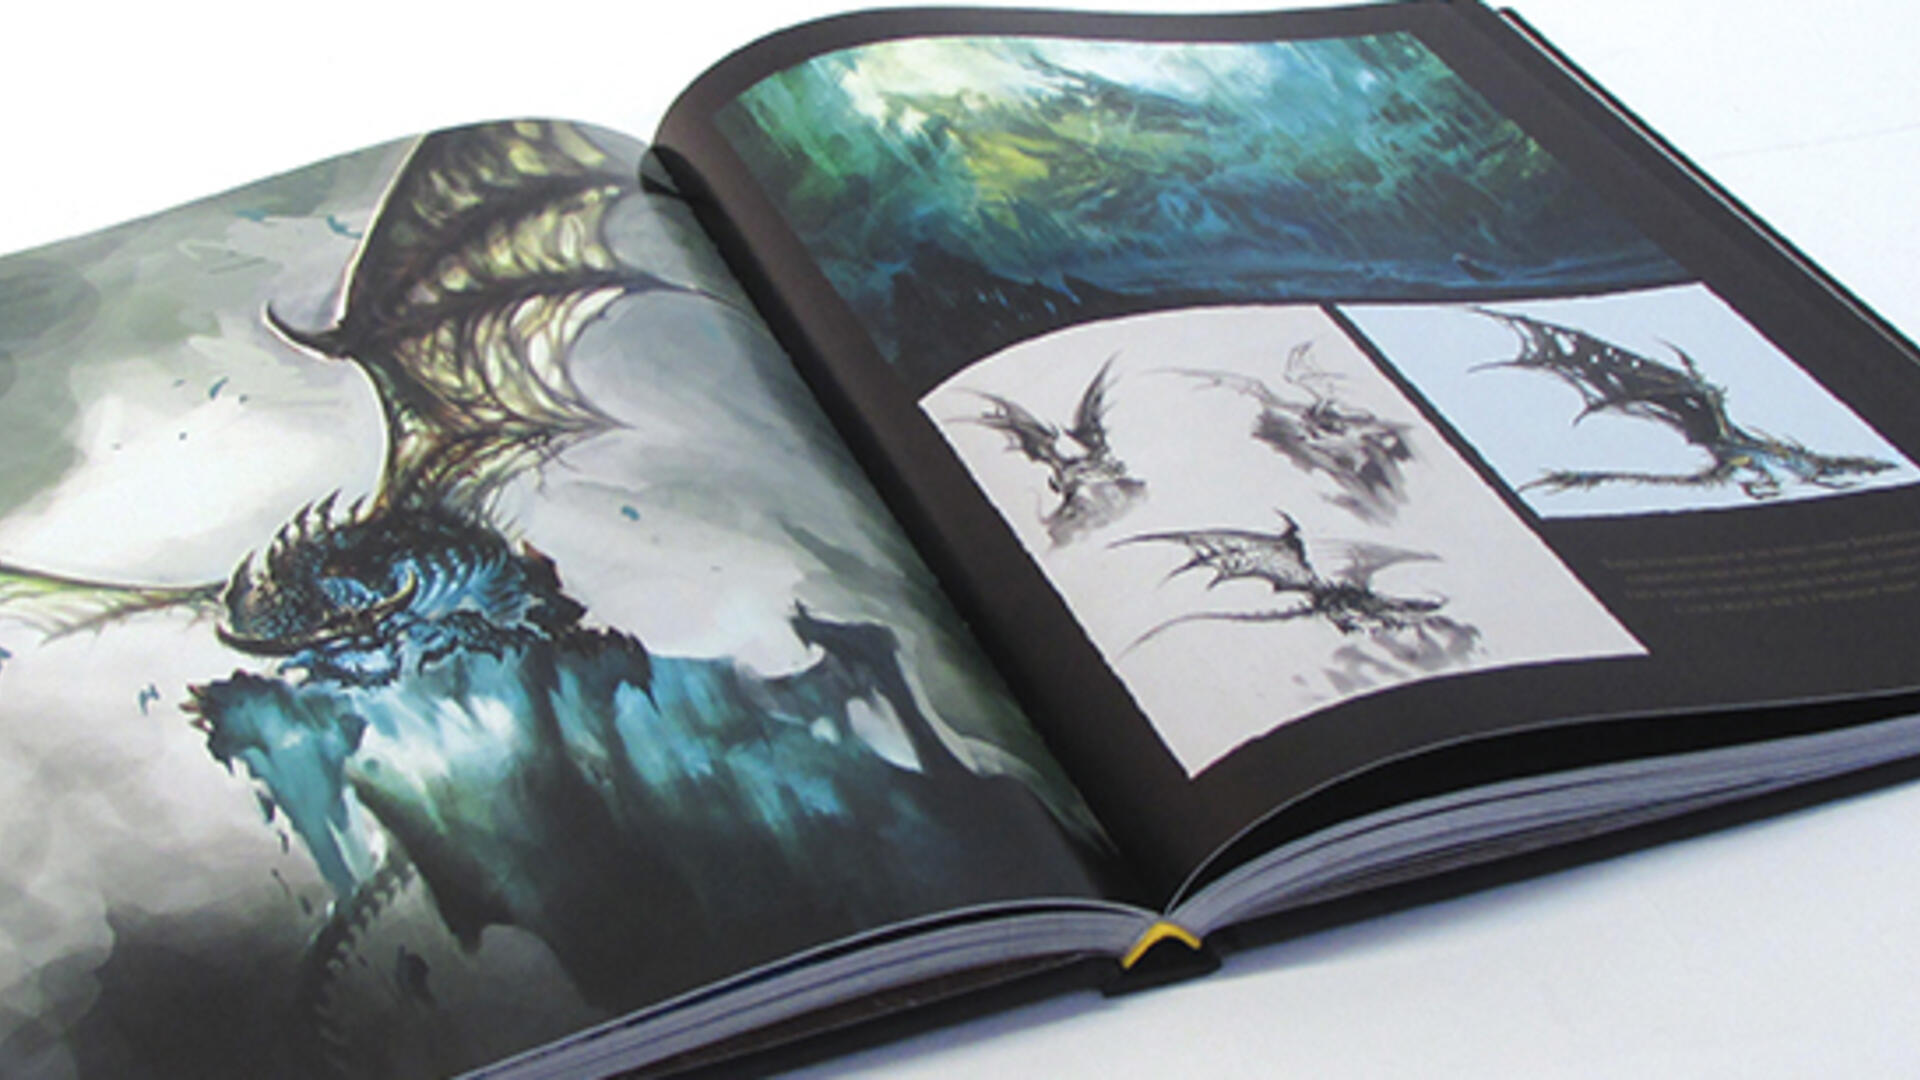 The Art of World of Warcraft Book Review: A Stunning Tome